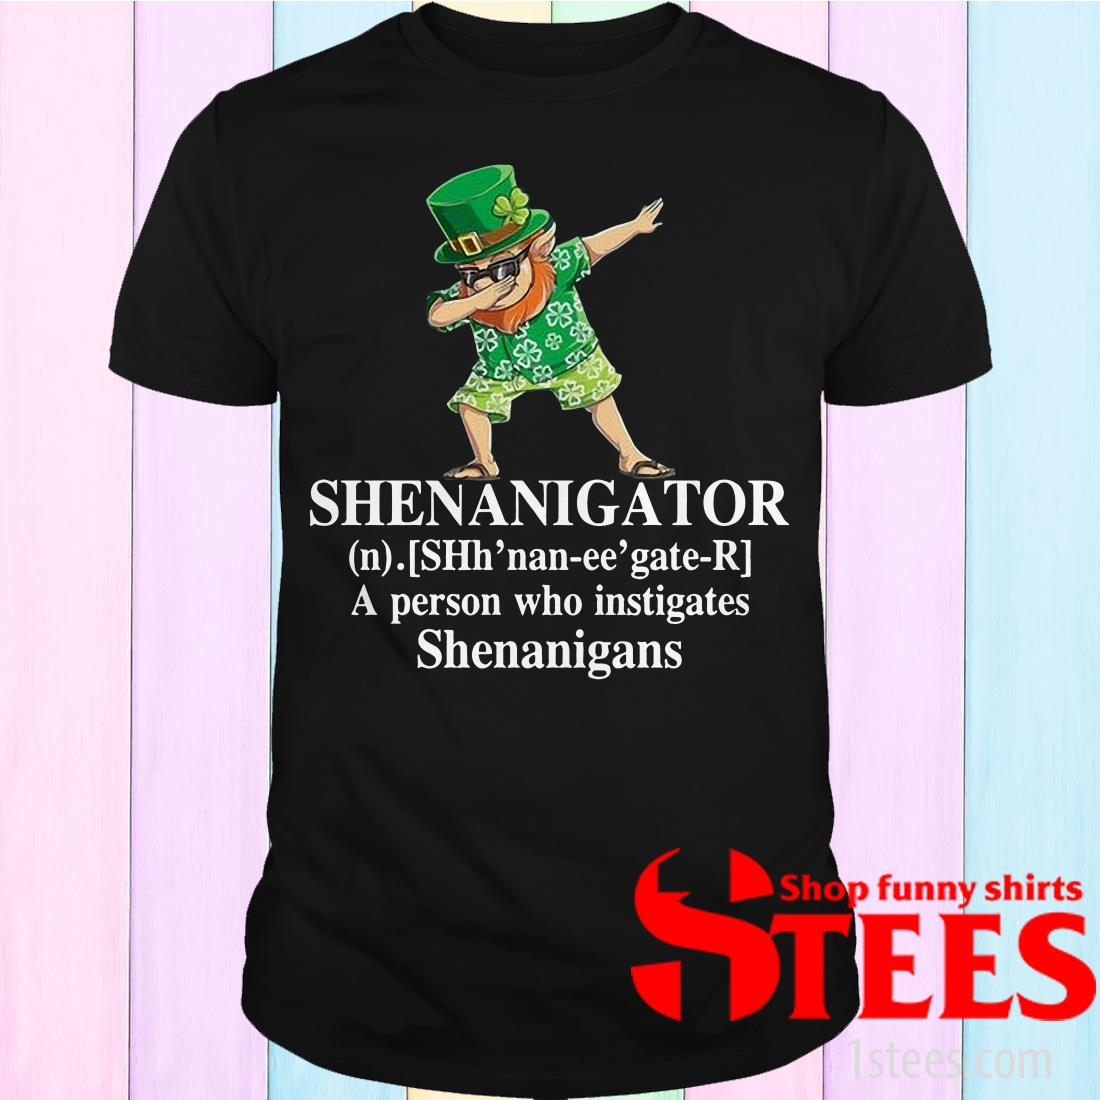 Irish Dabbing Shenanigator Definition A Person Who Instigates Shenanigans Shirt